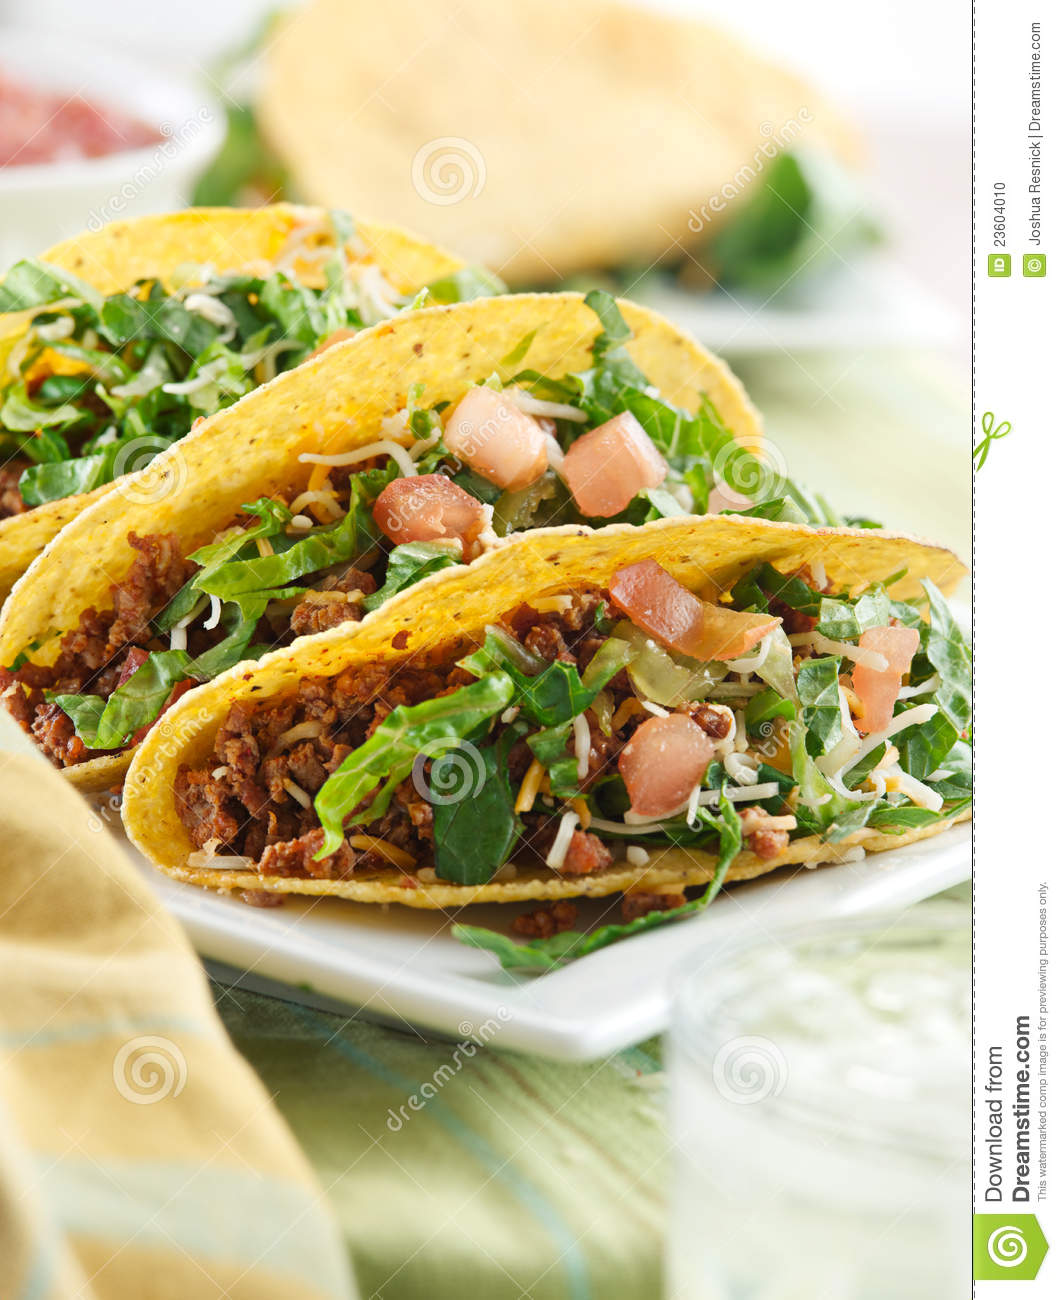 Cuisine mexicaine trois tacos de boeuf photo stock image 23604010 for Cuisine mexicaine